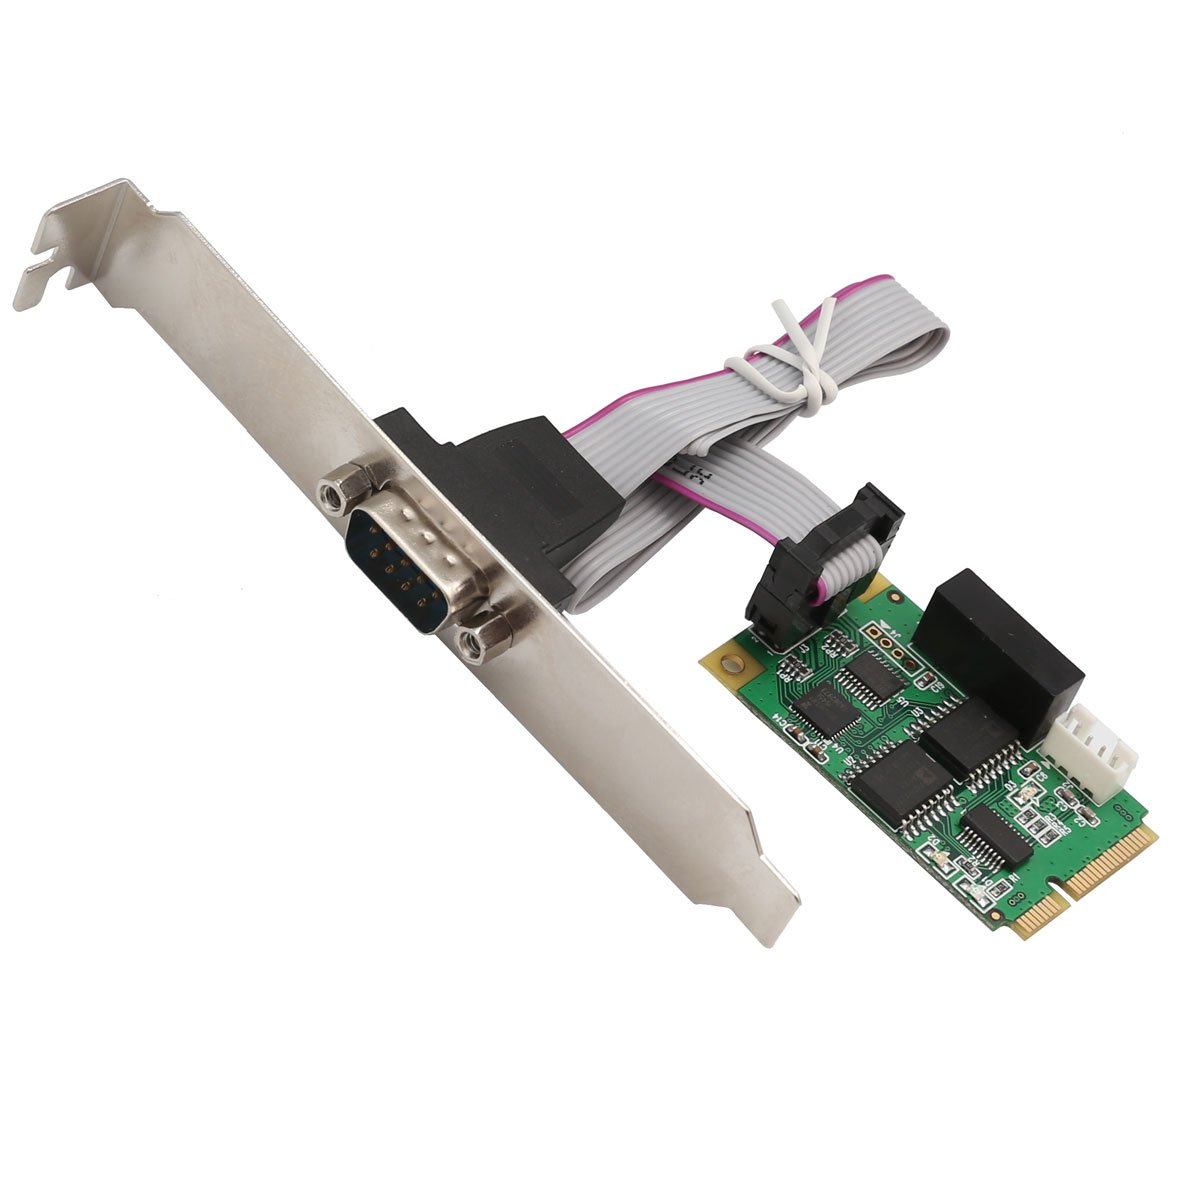 IO Crest SI-MPE15062 Full Size Mini PCIe Card or USB 2.0 1 Port Serial DB9 RS232/422/485 Adapter